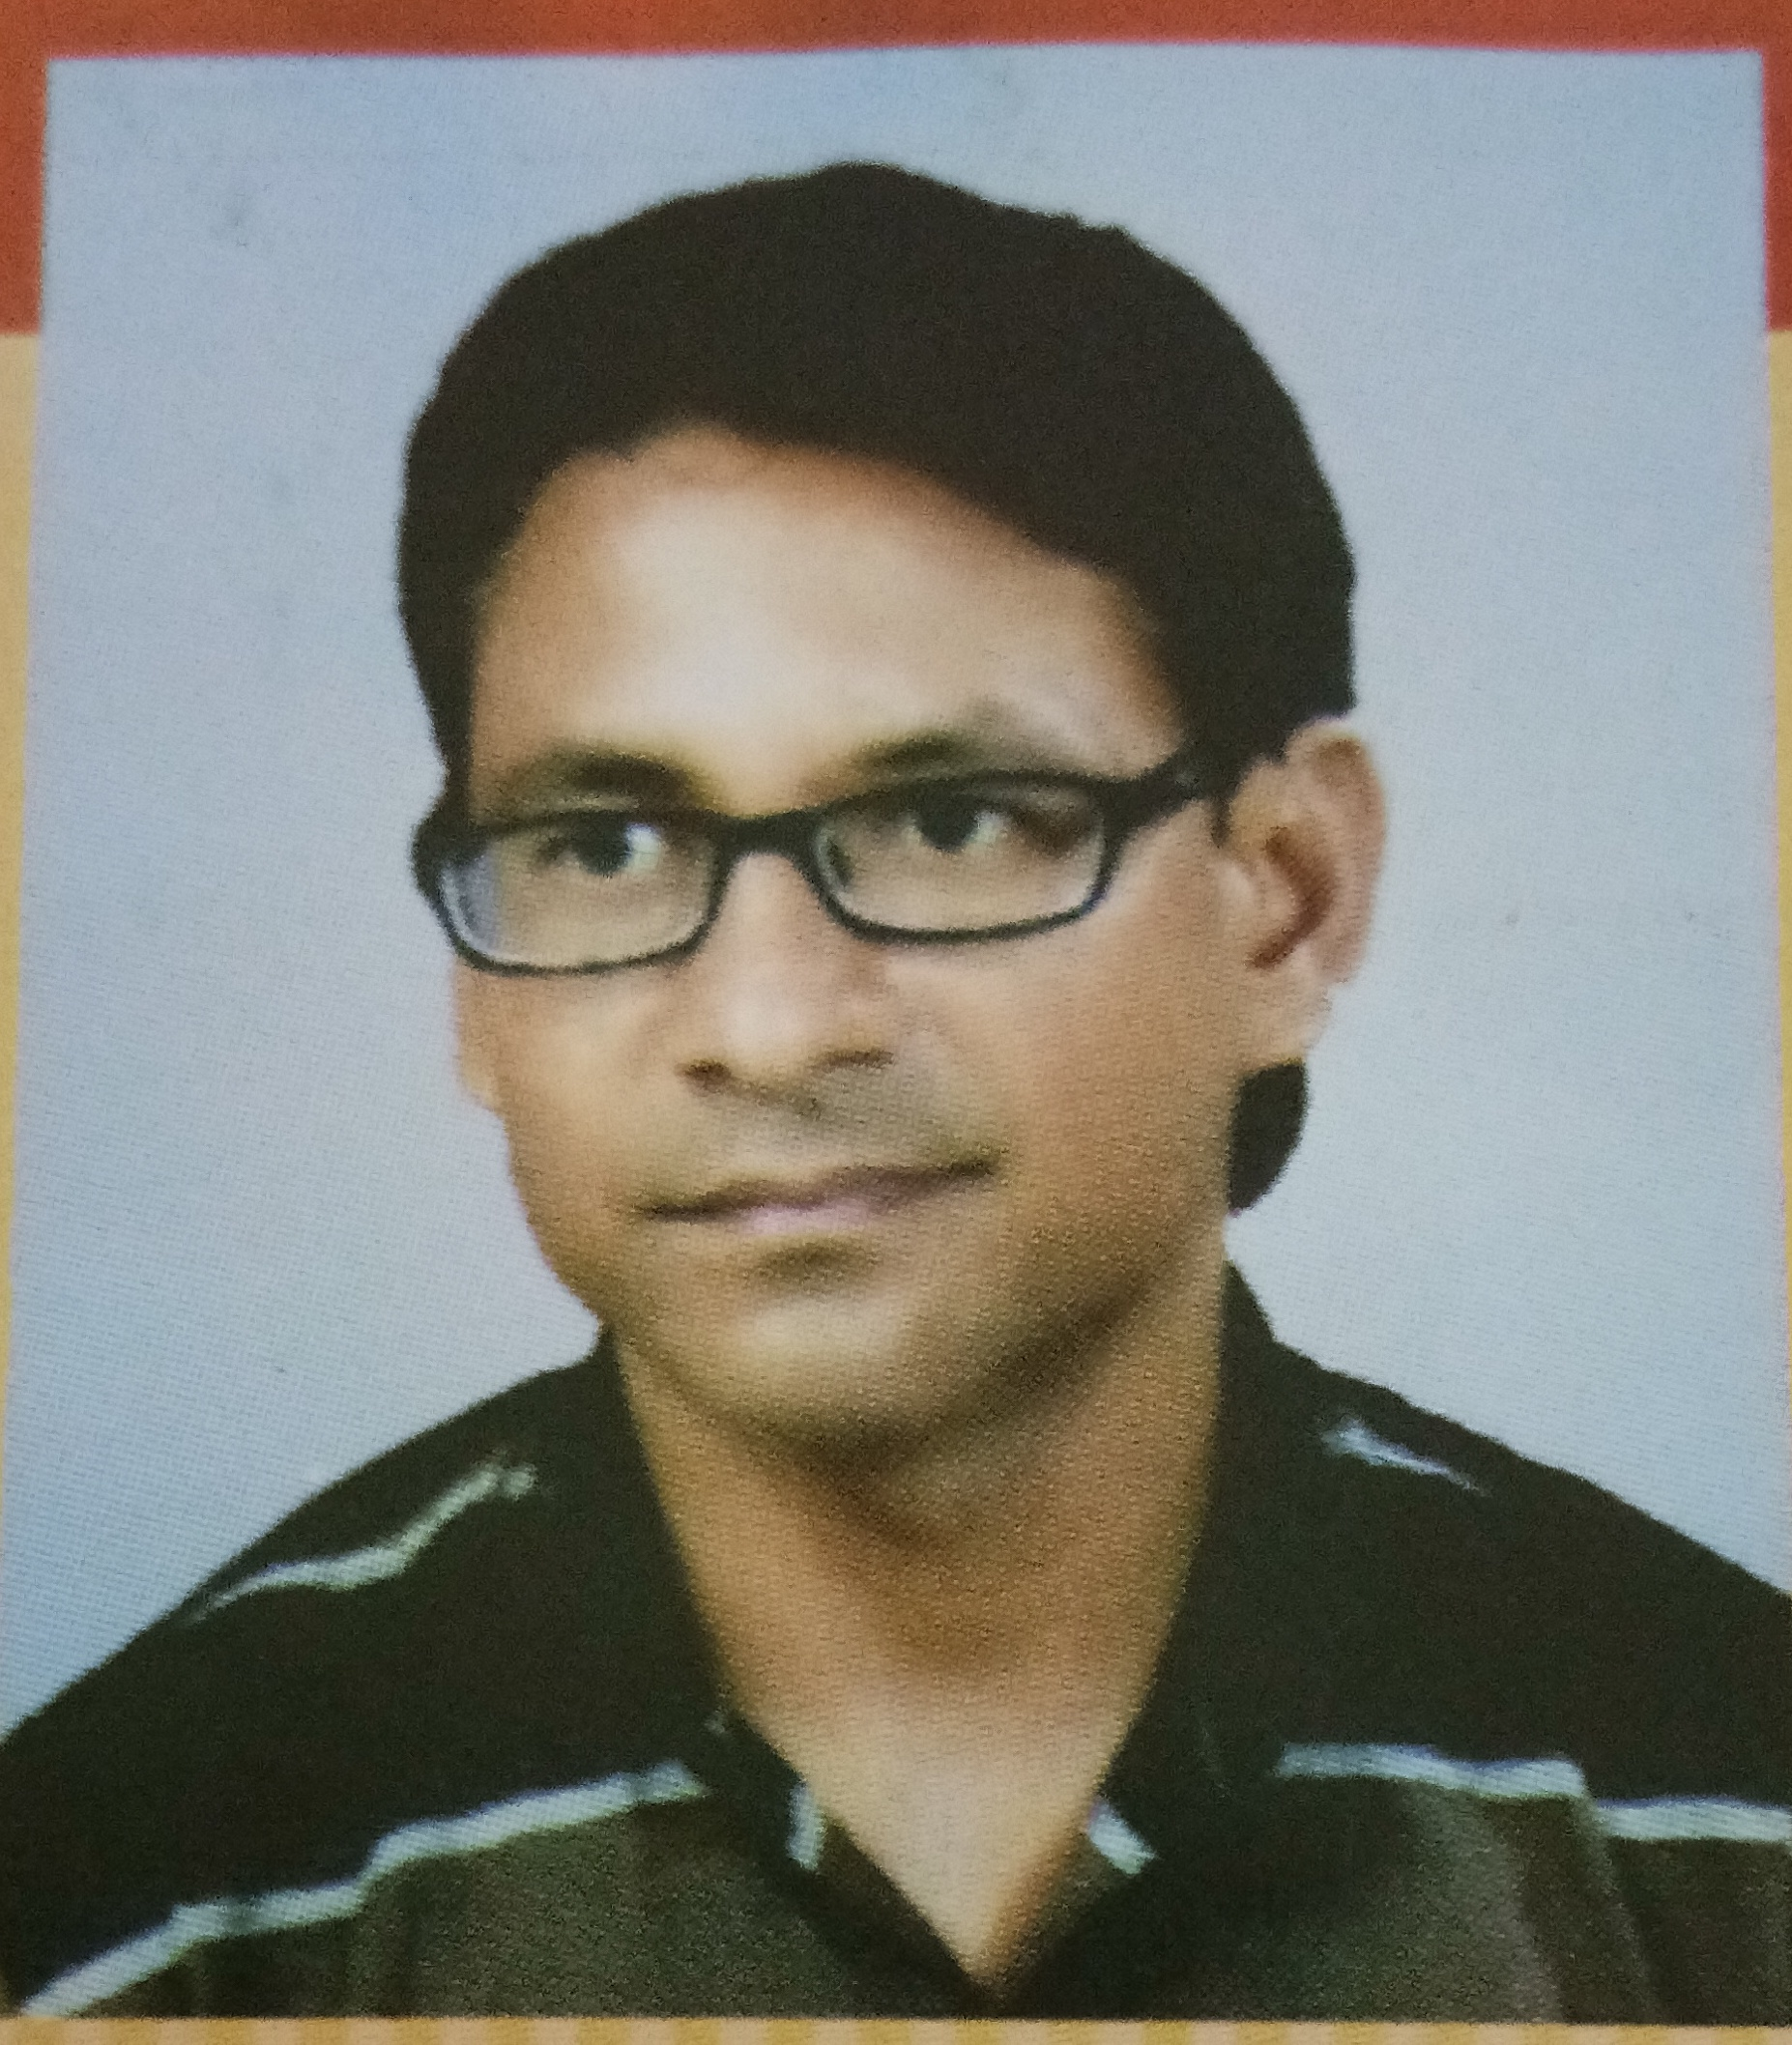 Hemendra Sir Profile Picture from Pant Agro Classes in Kota